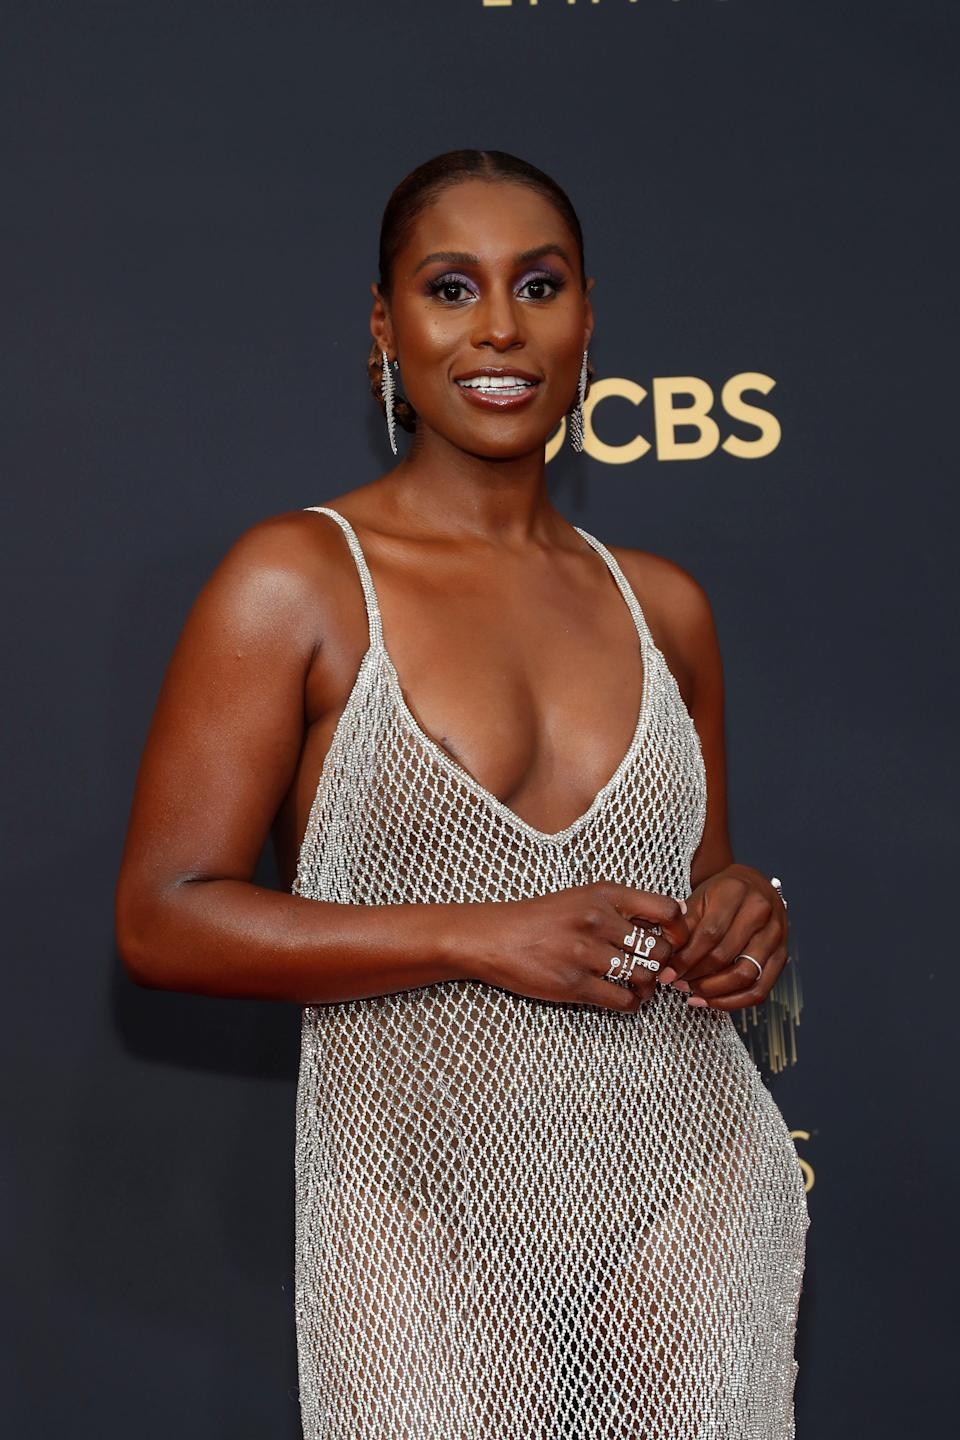 Issa Rae arrives at the 73rd Primetime Emmy Awards in Los Angeles, U.S., September 19, 2021. REUTERS/Mario Anzuoni